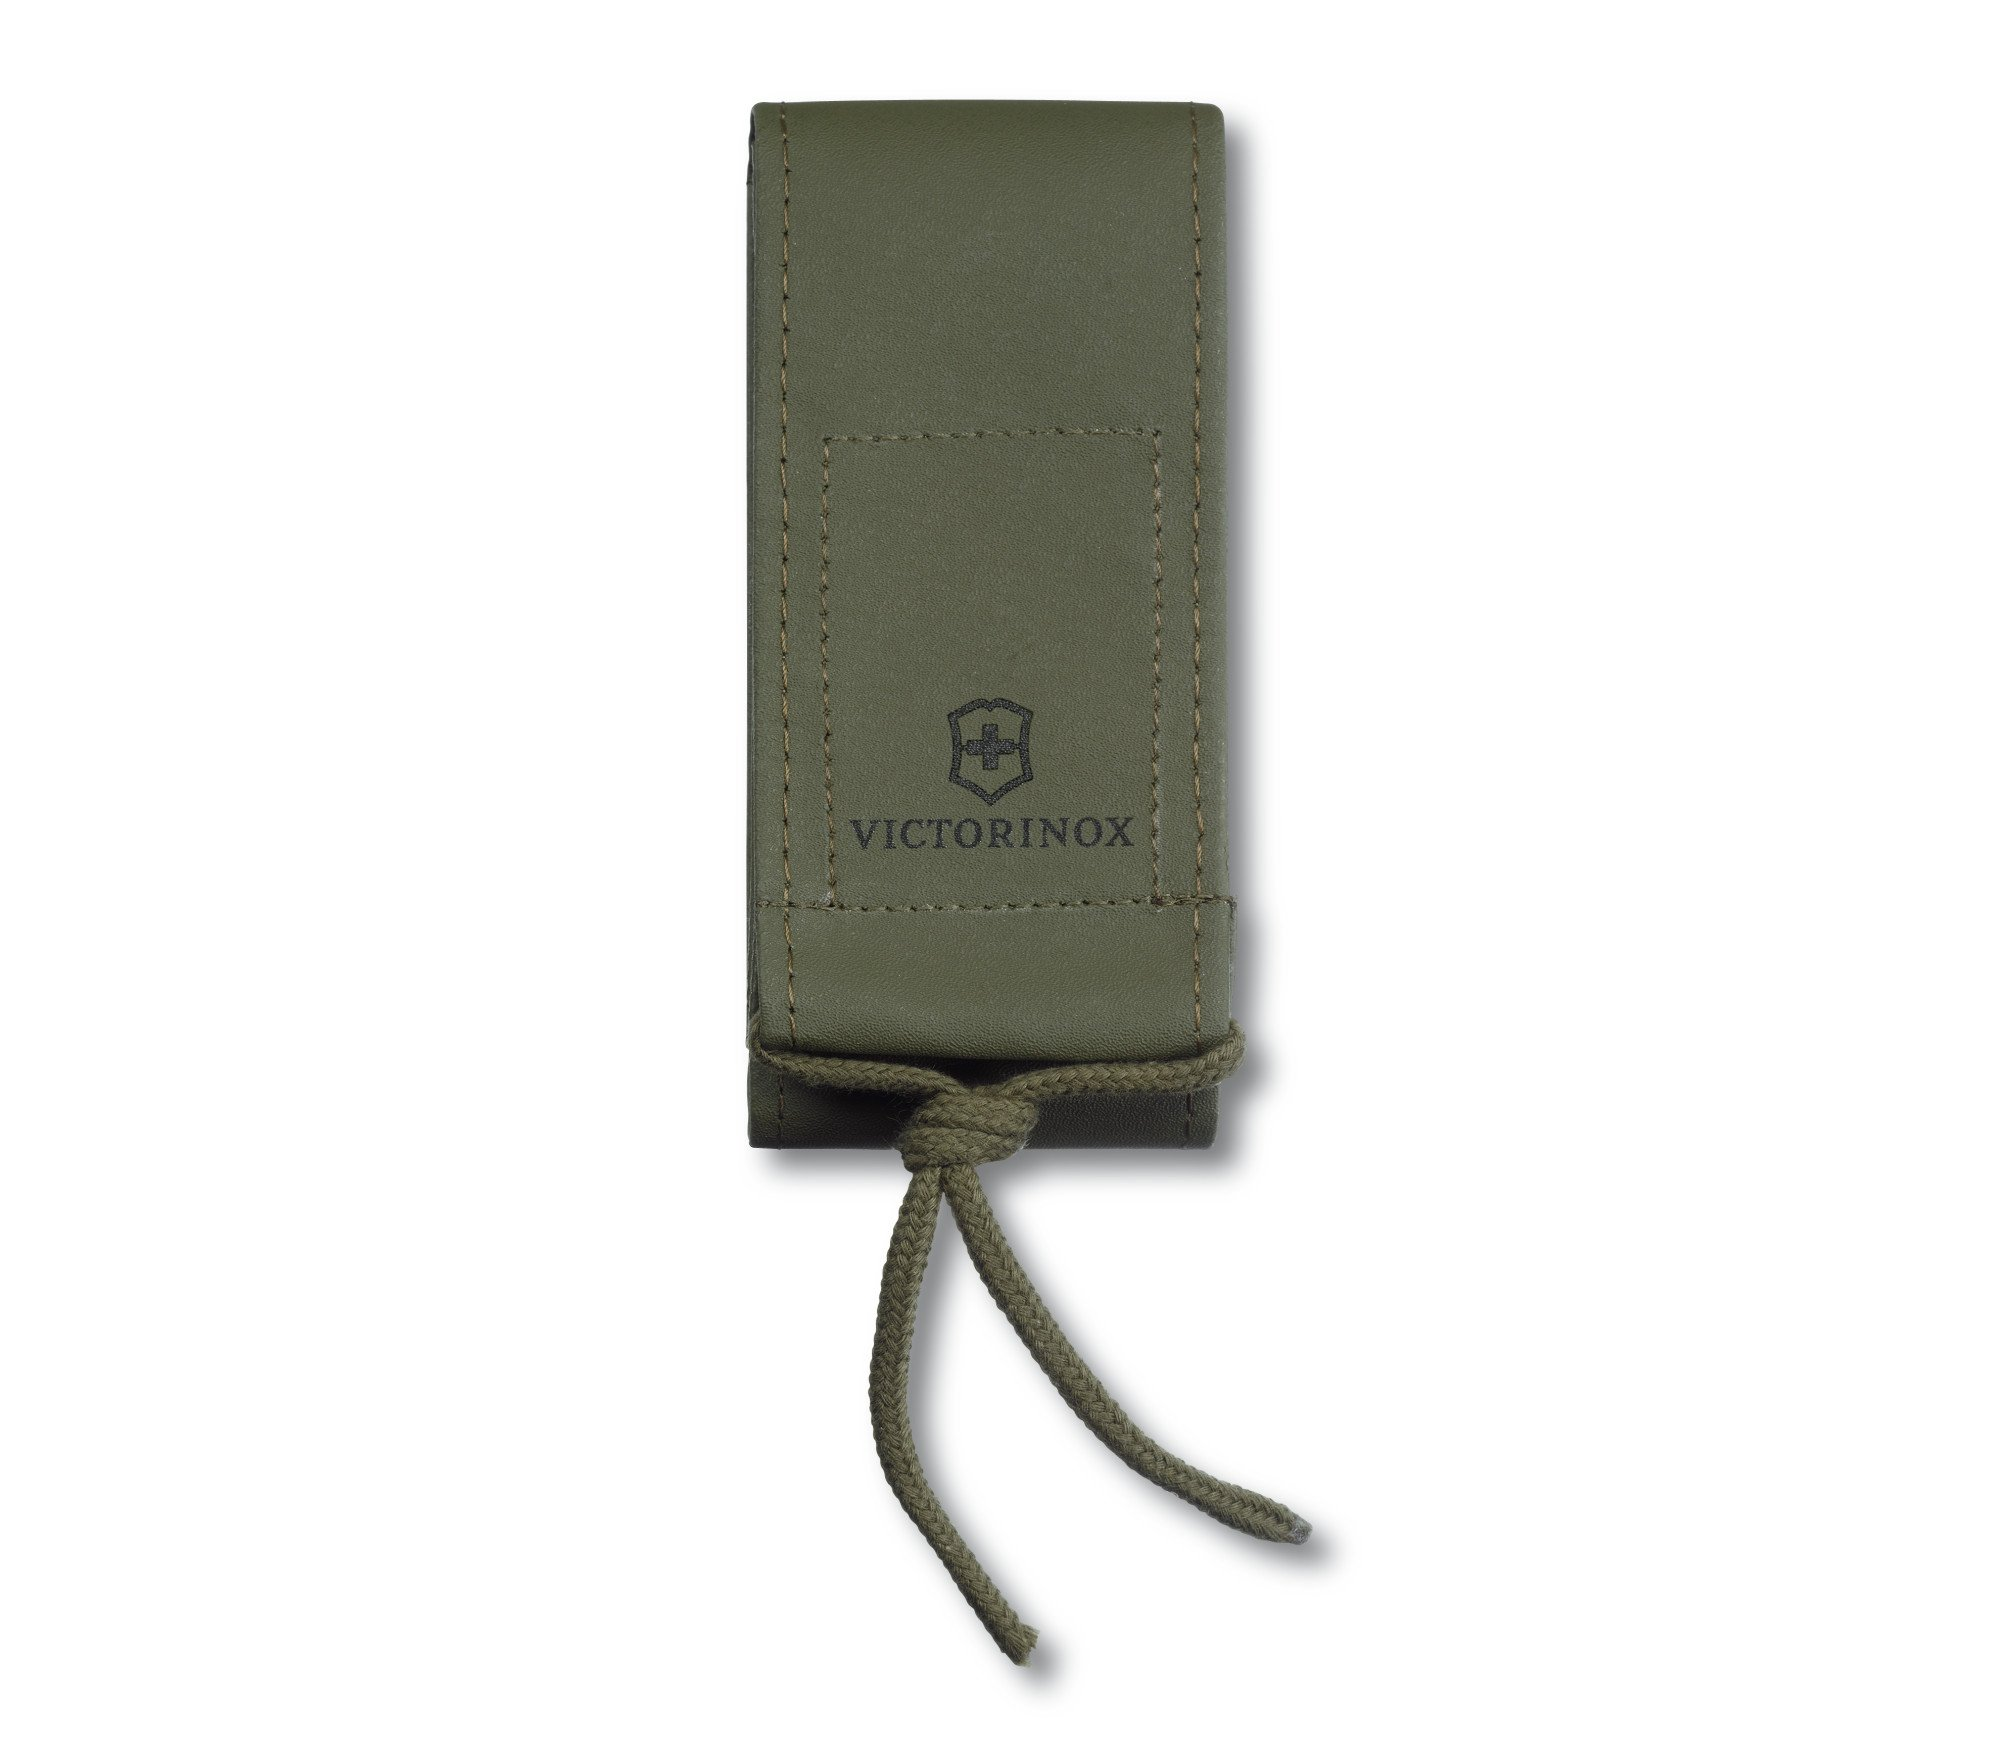 Victorinox Swiss Army Hunter Pro Multi-tool Pocket Knife, Orange with Olive Nylon Pouch by Victorinox (Image #4)